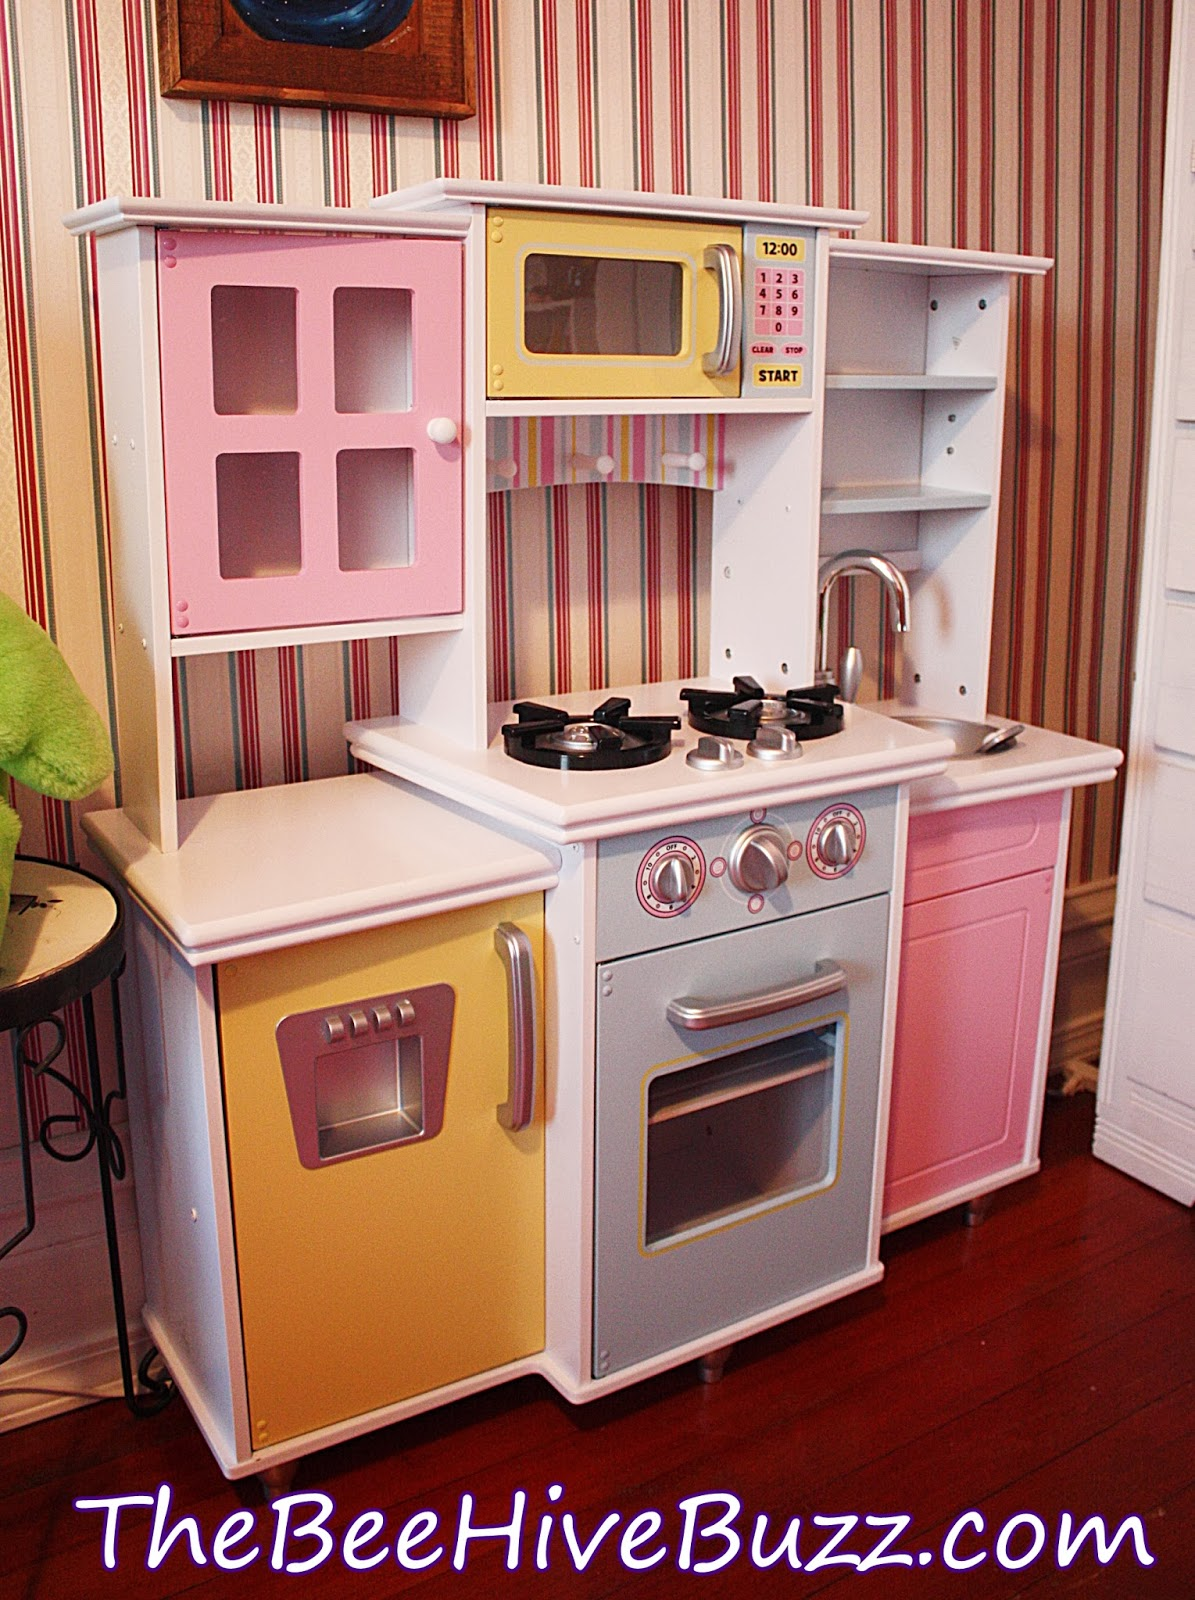 The Bee Hive Buzz: Get Cooking With KidKraft Play Kitchens!